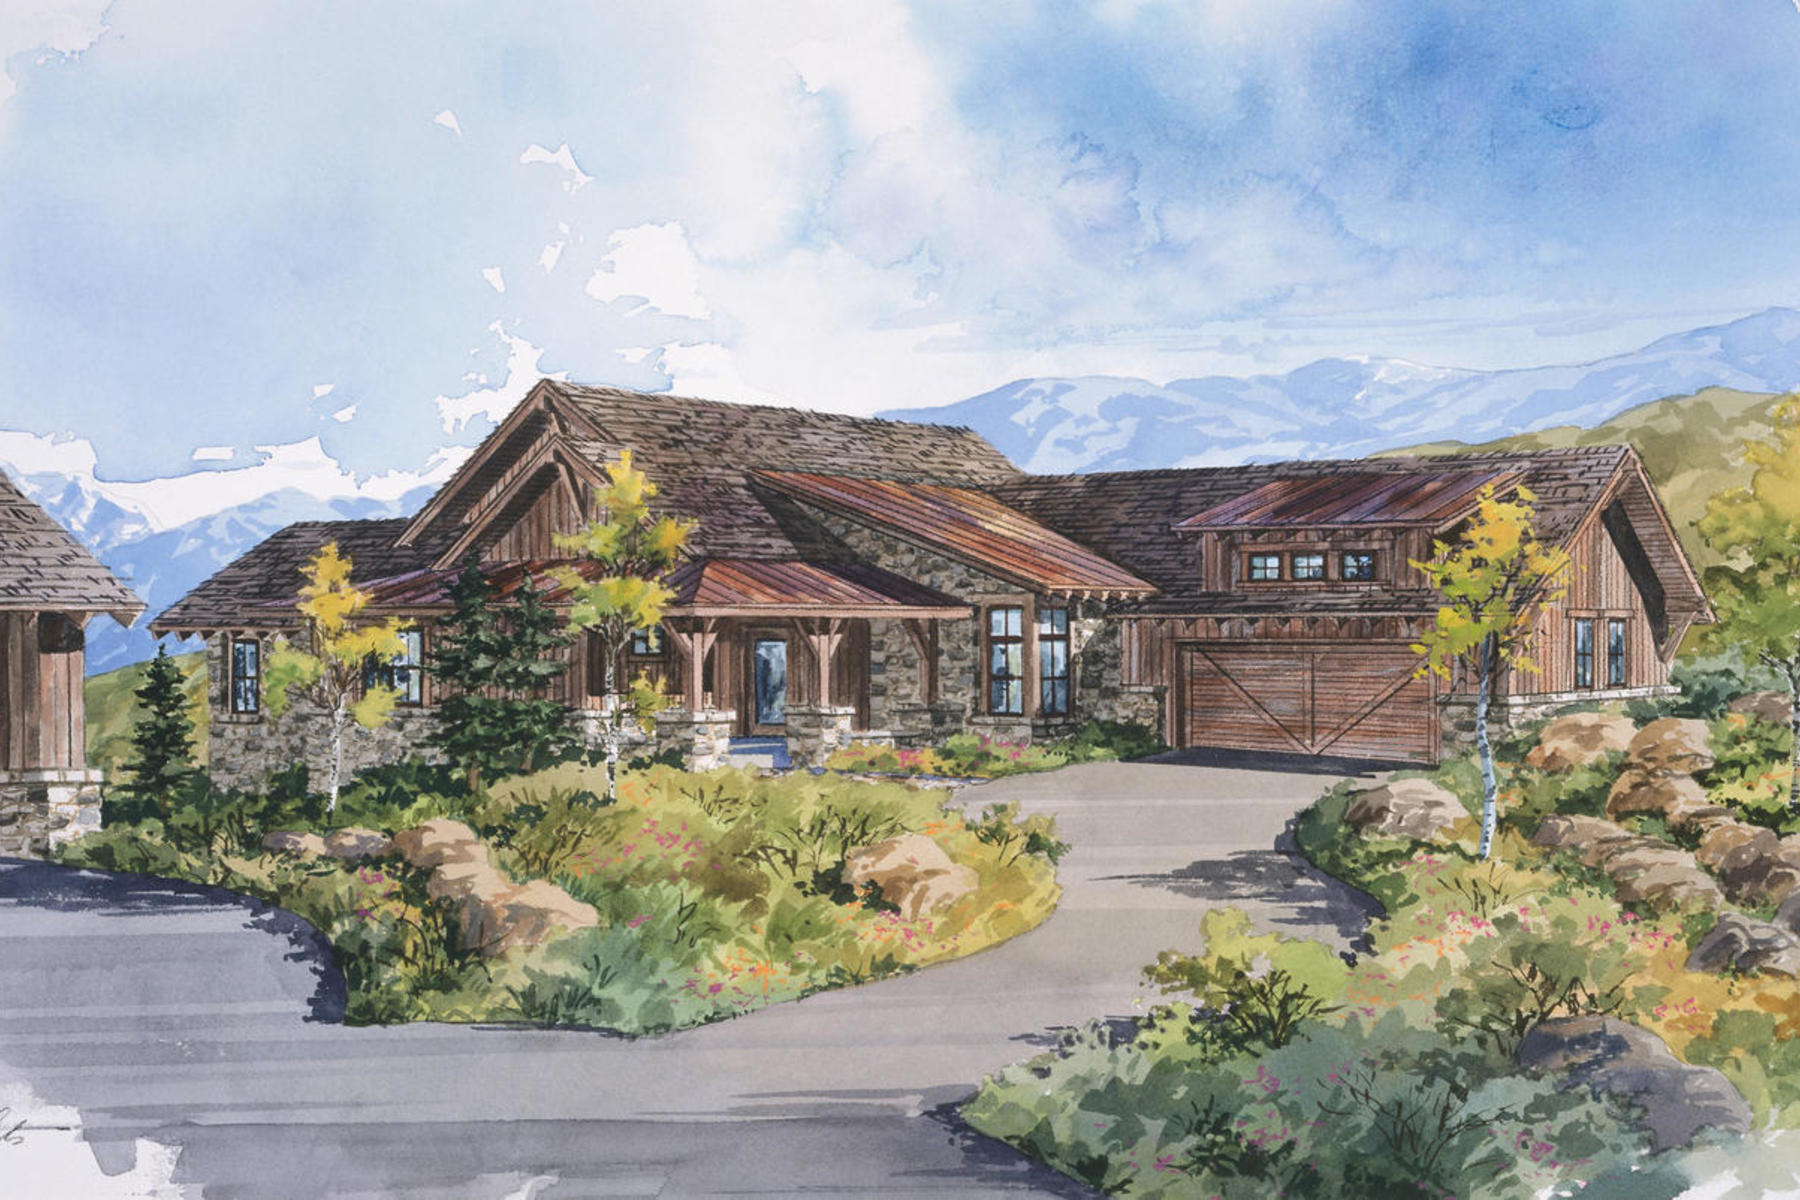 Single Family Home for Sale at Park City Cabin in Promontory A Private Mountain Golf Recreational Community 3809 Cynthia Cir Lot 24 Park City, Utah, 84098 United States